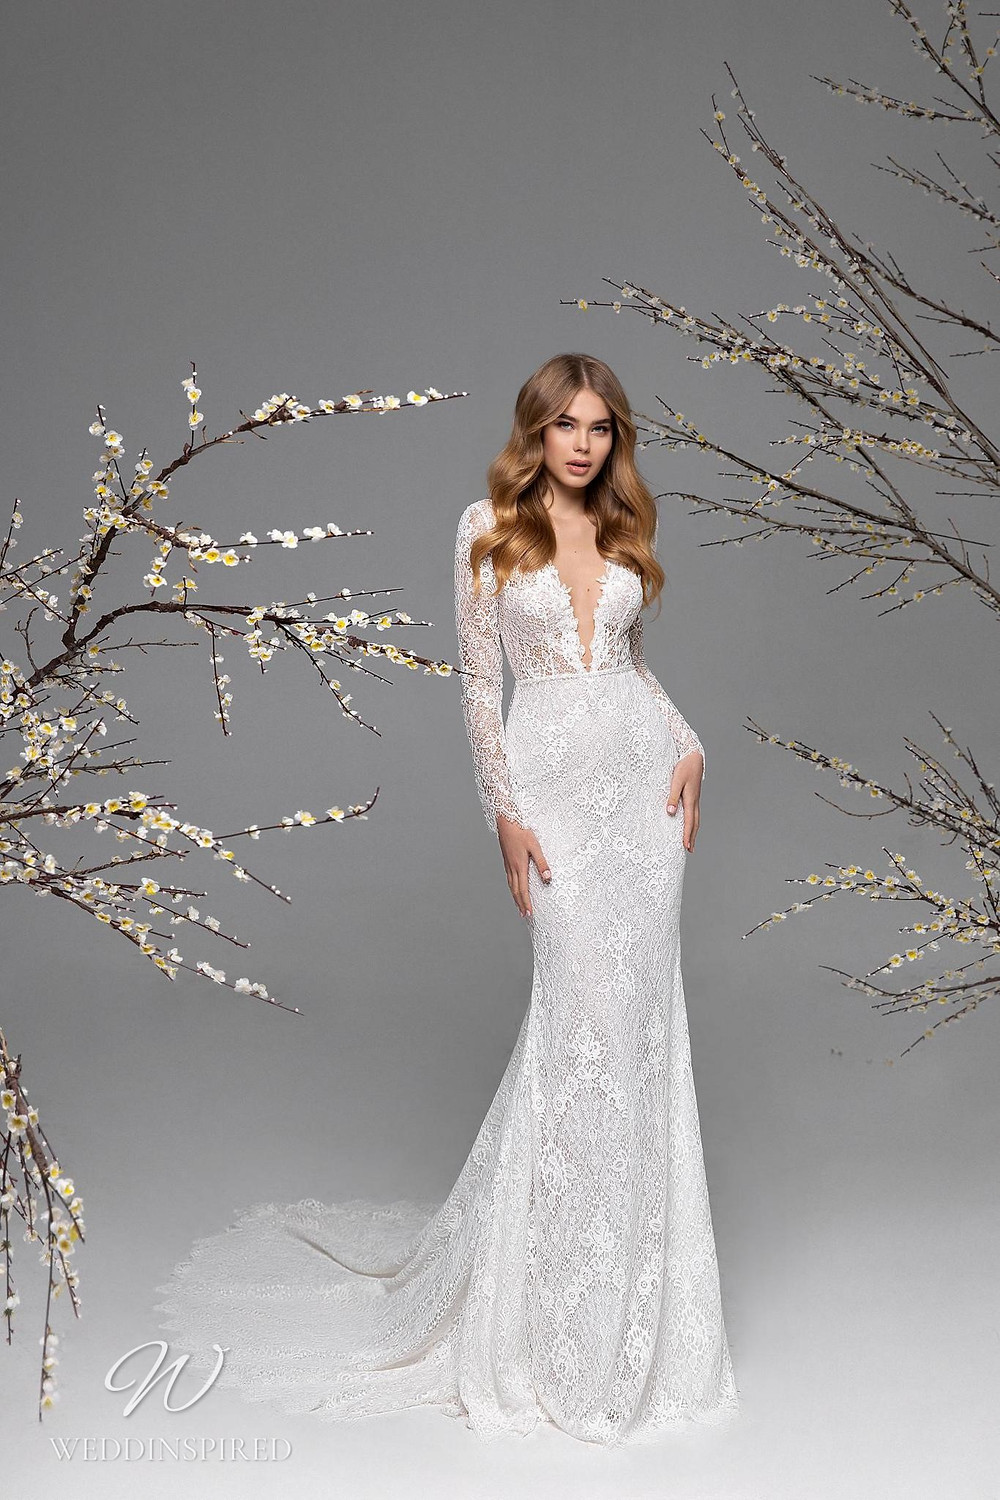 A Ricca Sposa lace mermaid wedding dress with long sleeves and a train